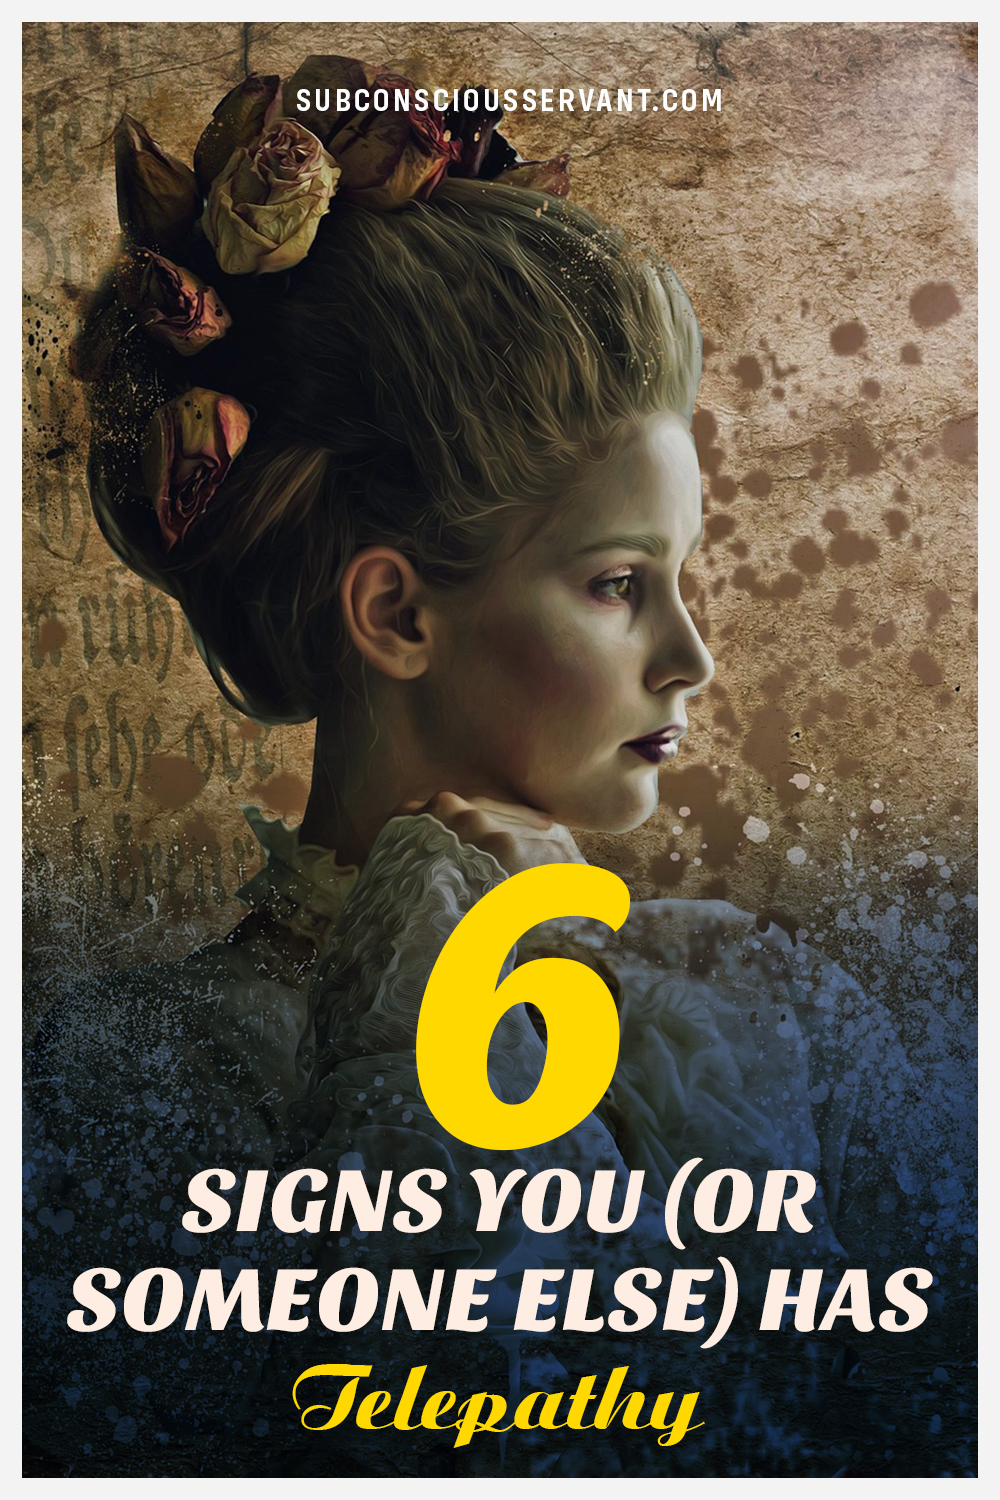 Telepathic Abilities: 6 Signs That You (Or Someone Else) Has Telepathy